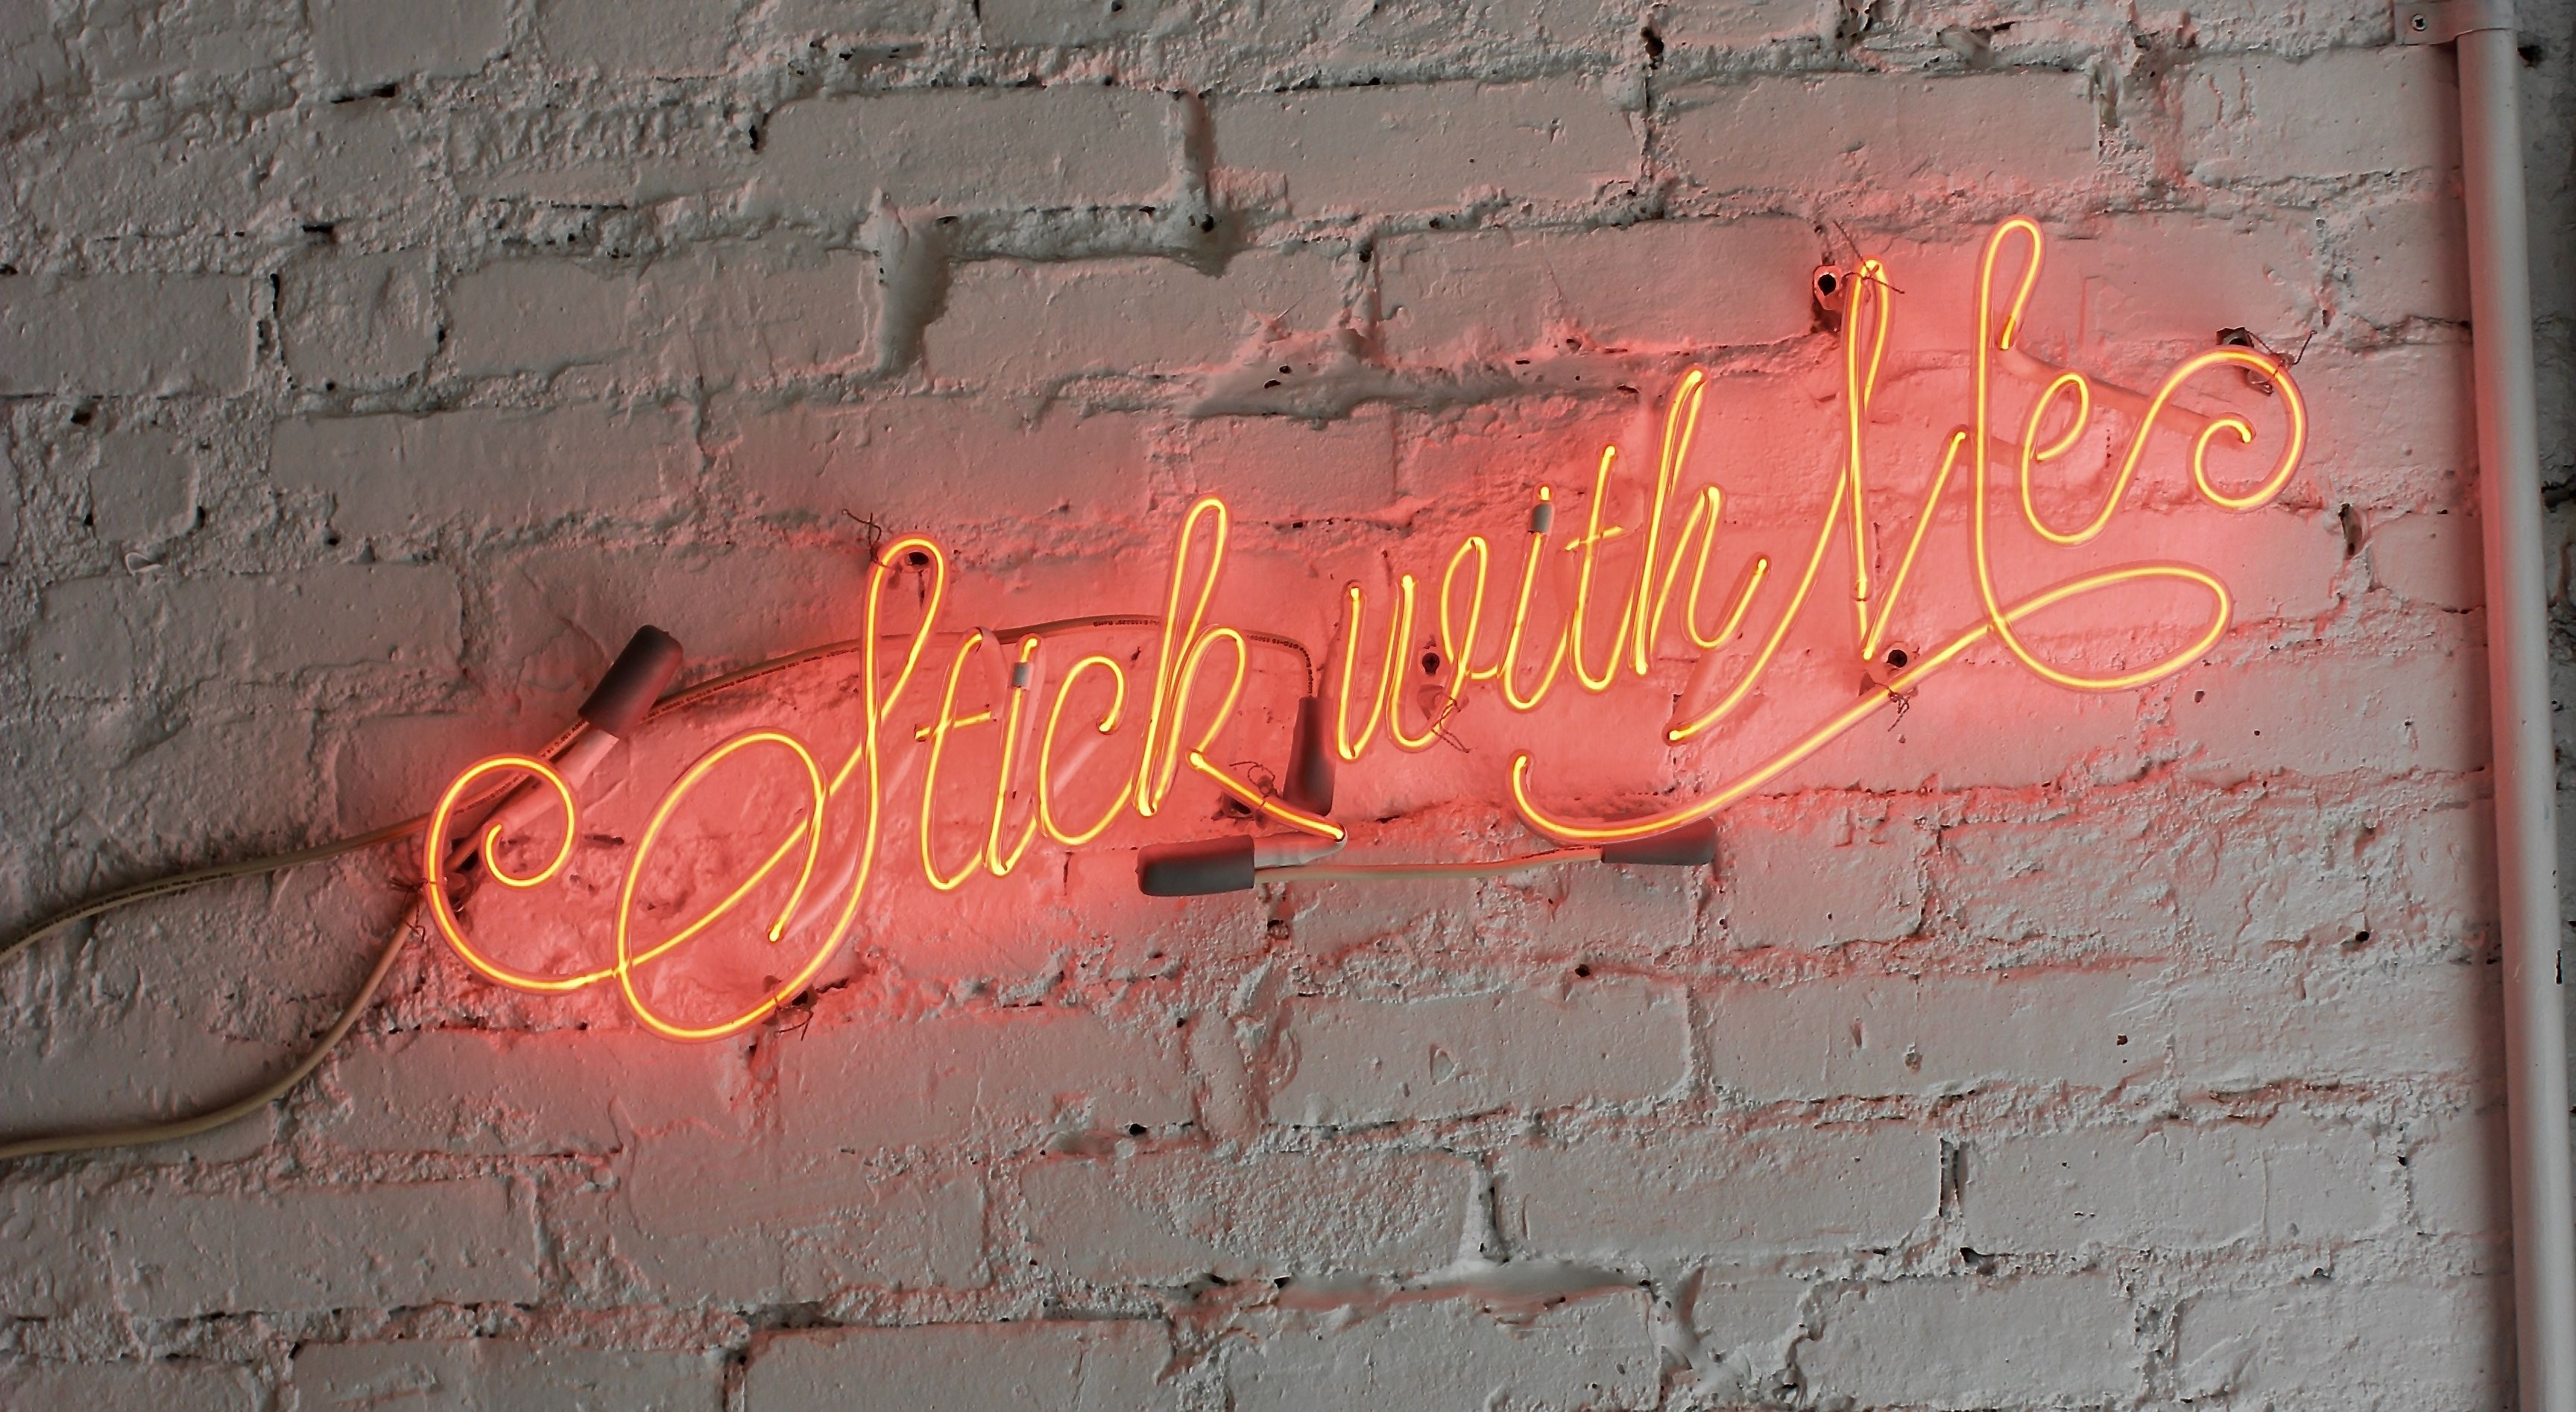 stick with me sayings led lights on the wall